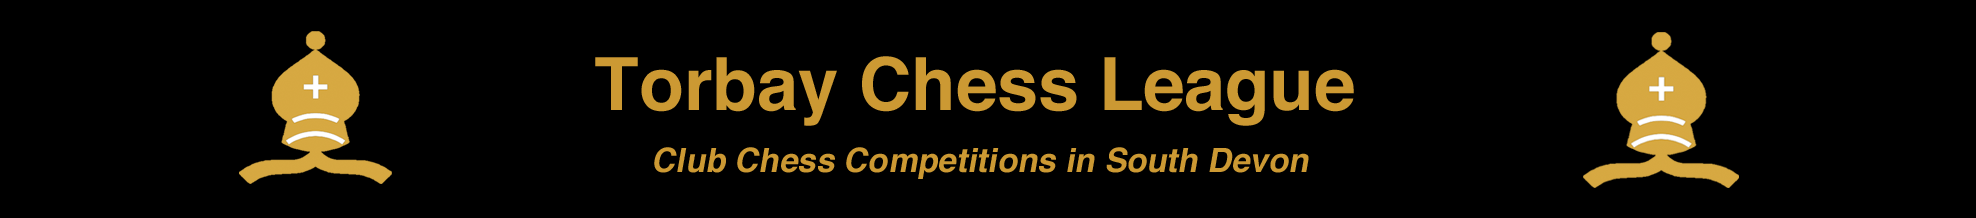 Torbay Chess League banner